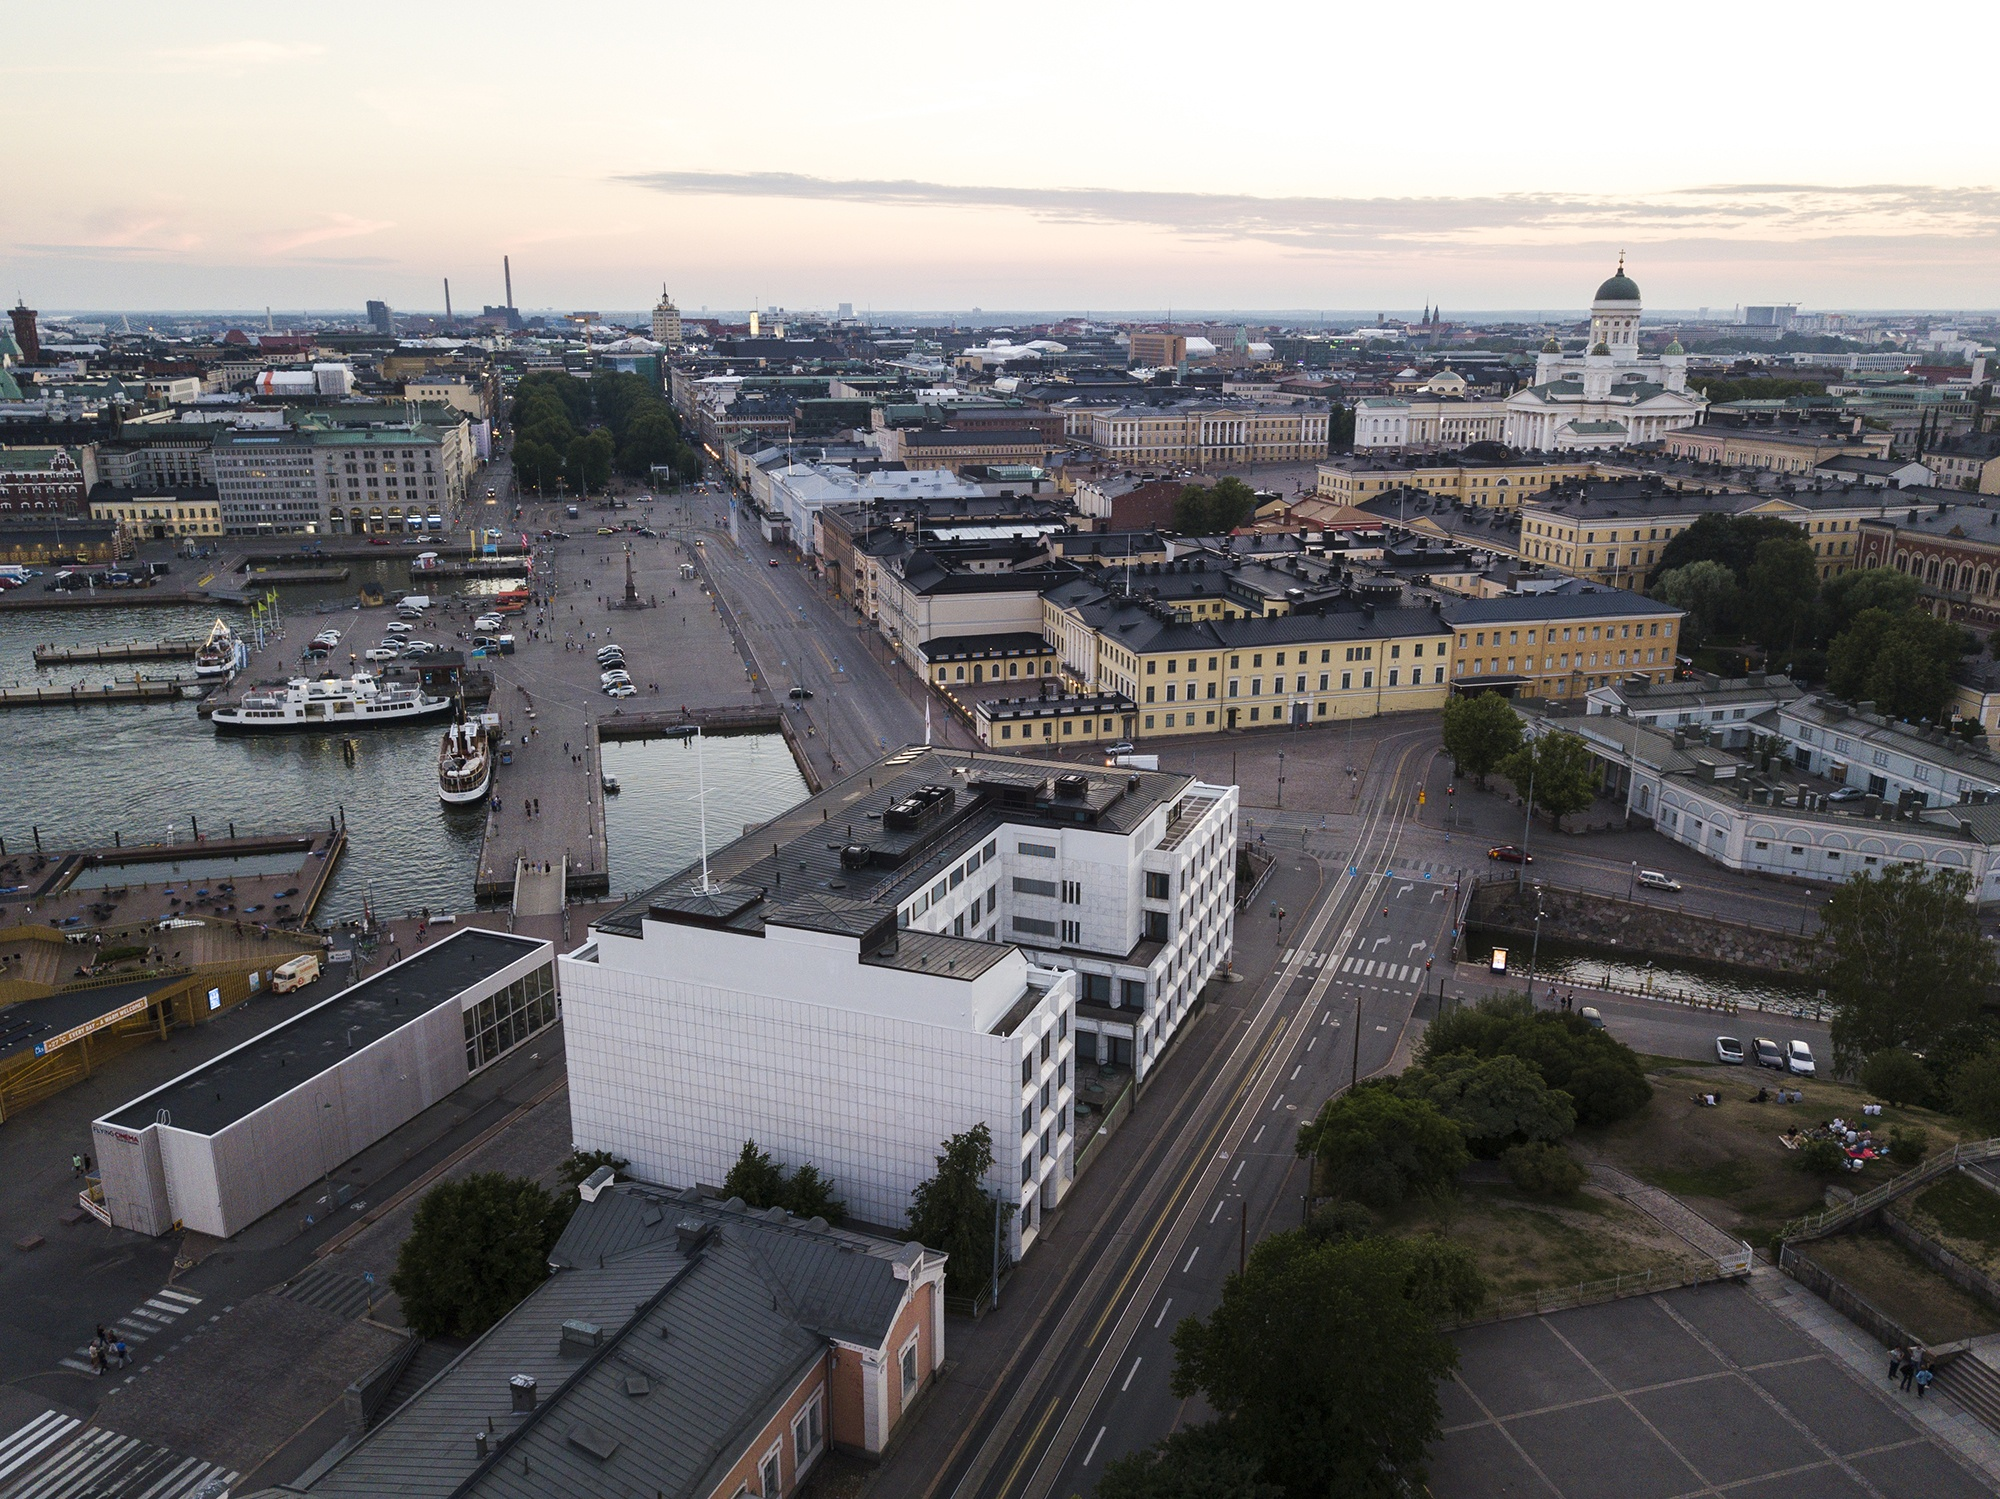 Helsinki Market Square and the Presidential Palace